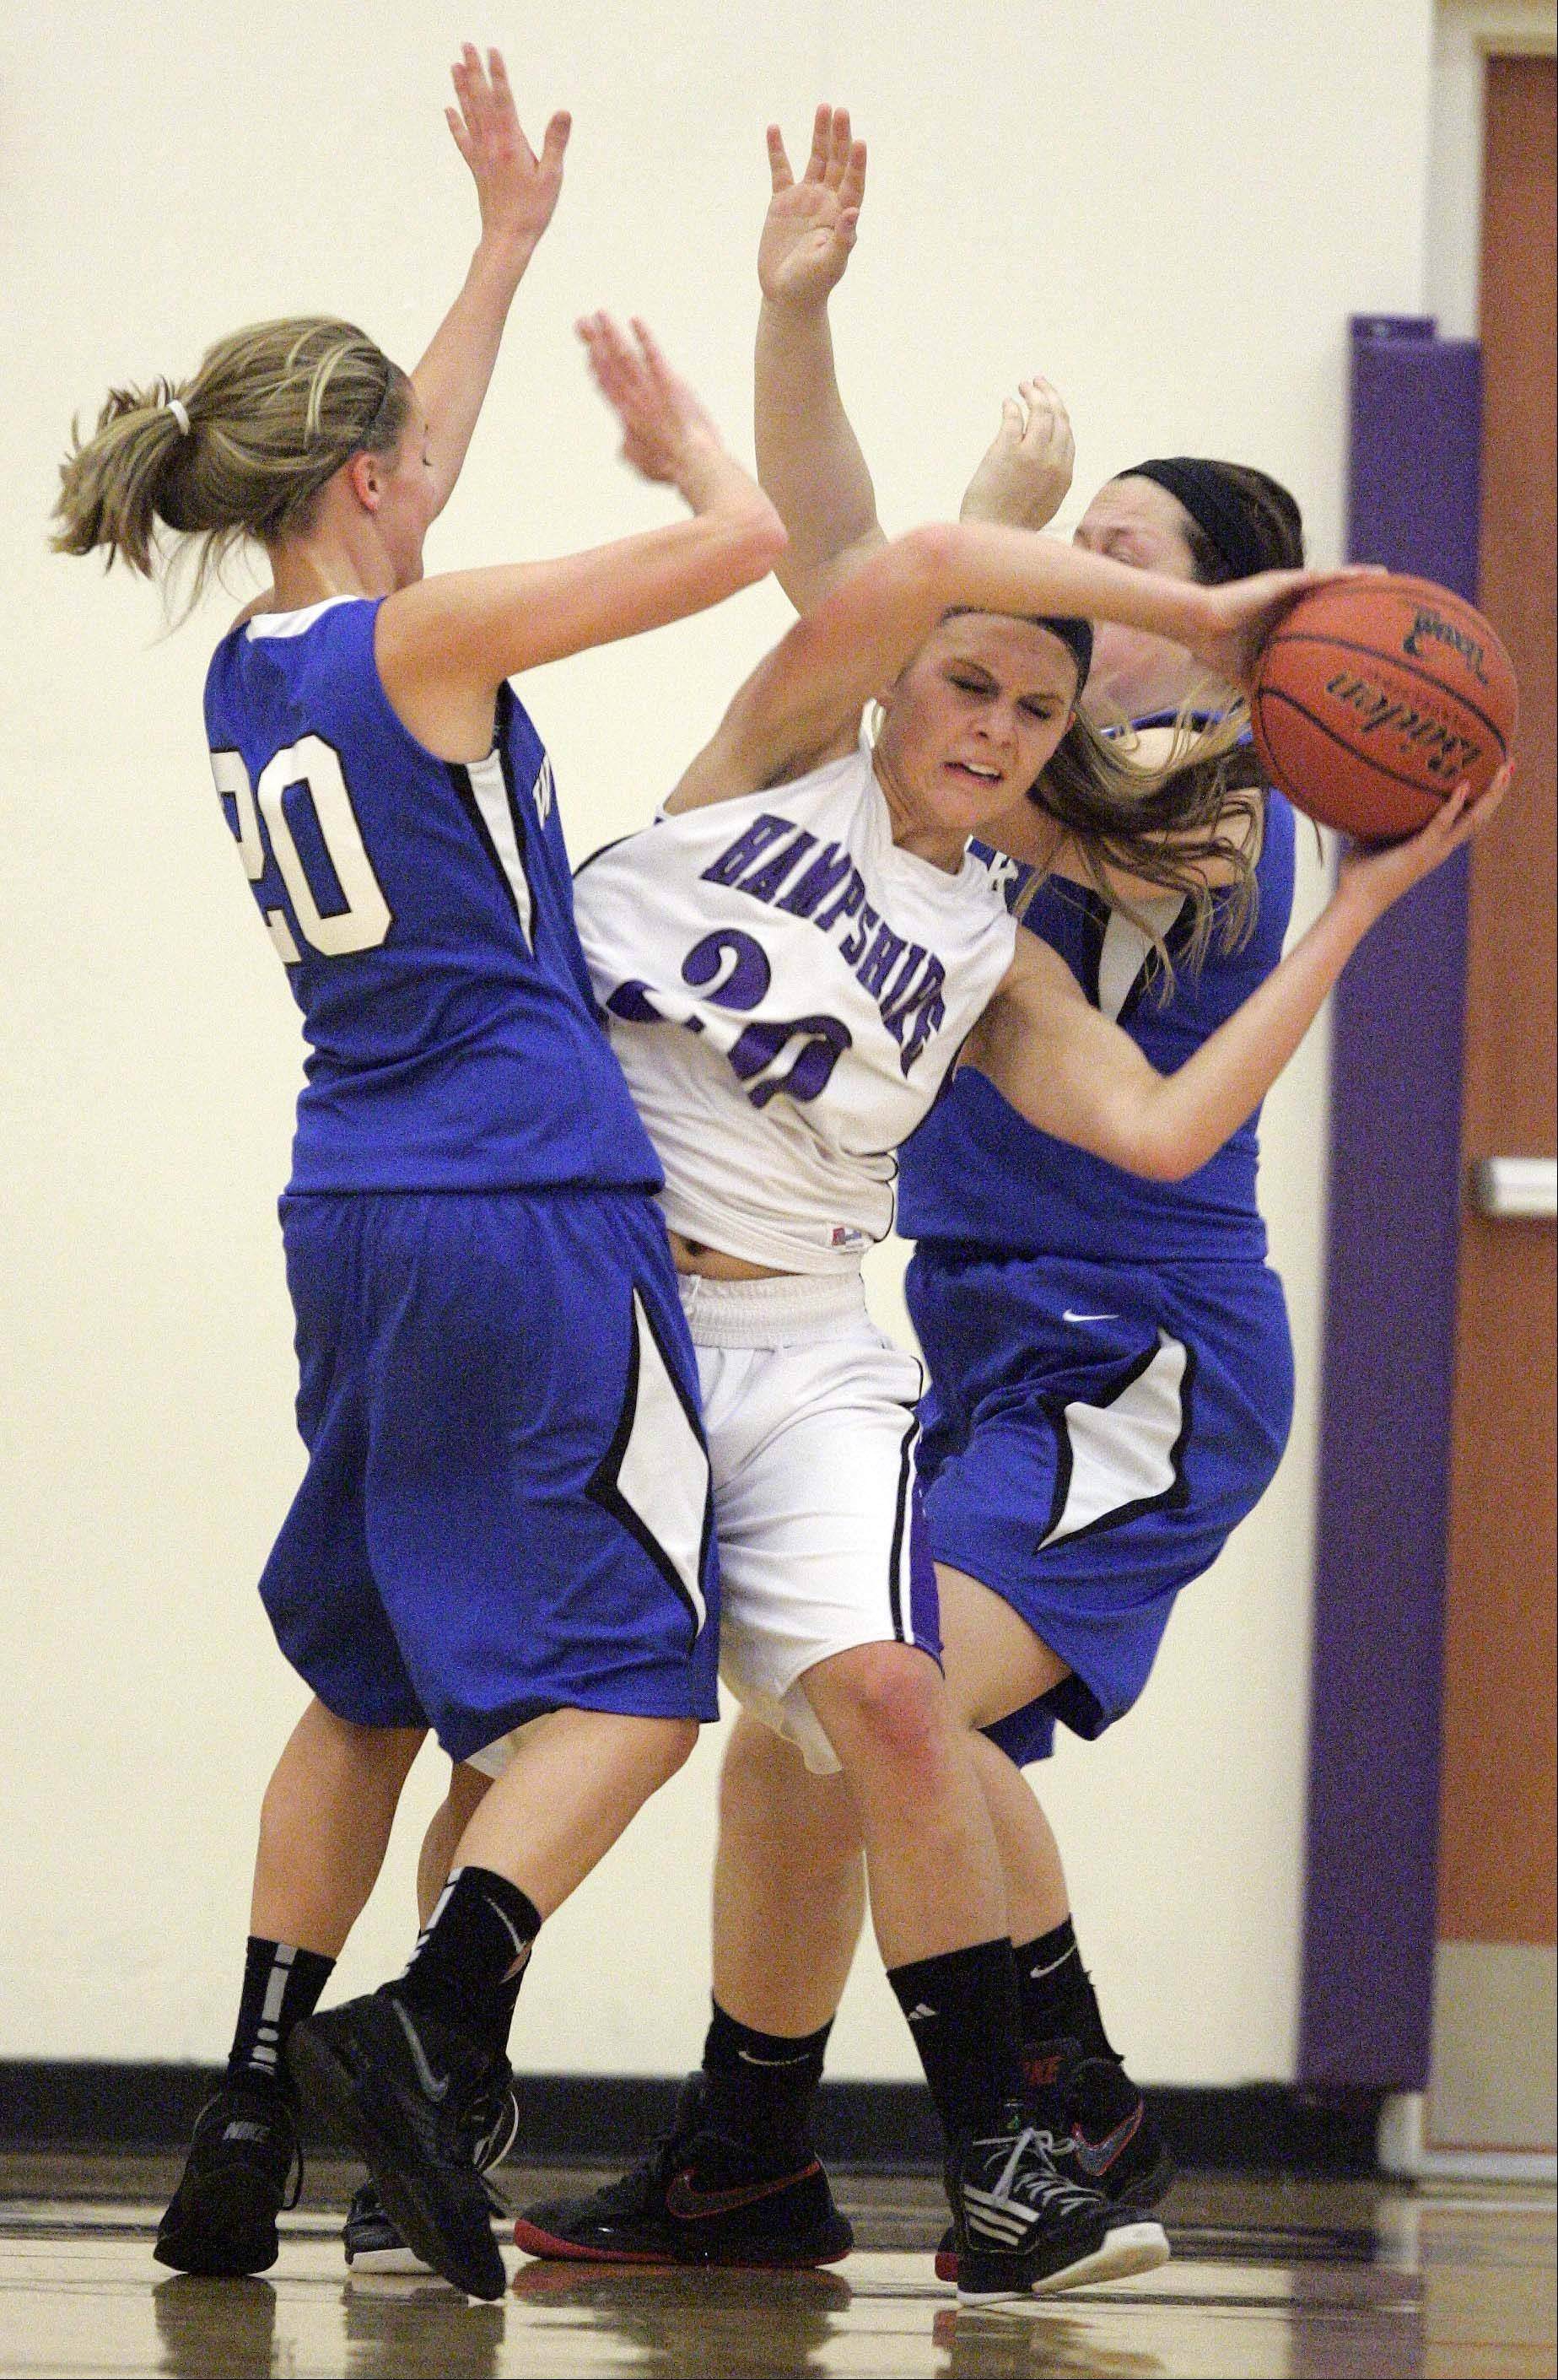 Hampshire's Lizzy Panzica (20) slips between Woodstock's Sydney Haulotte and Amber Roberts (44) Saturday at Hampshire. .